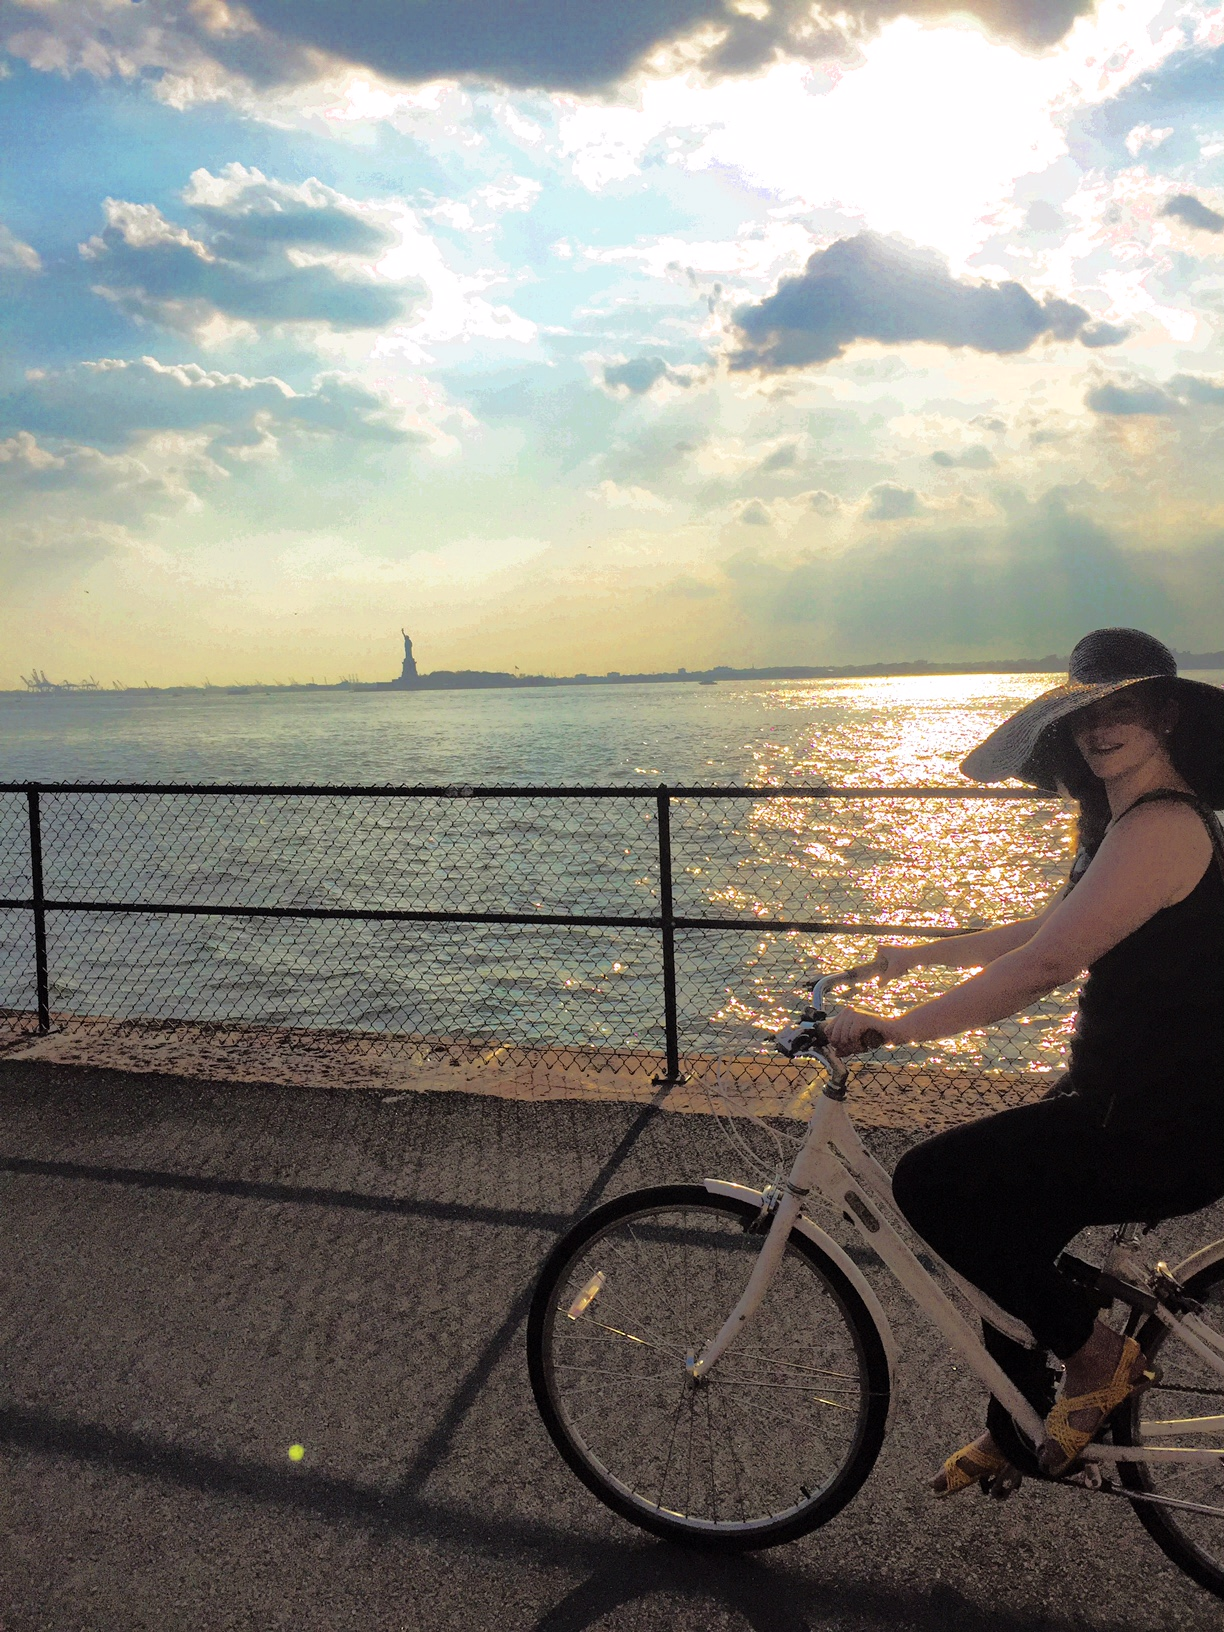 Casually cruisin' past old lady Liberty